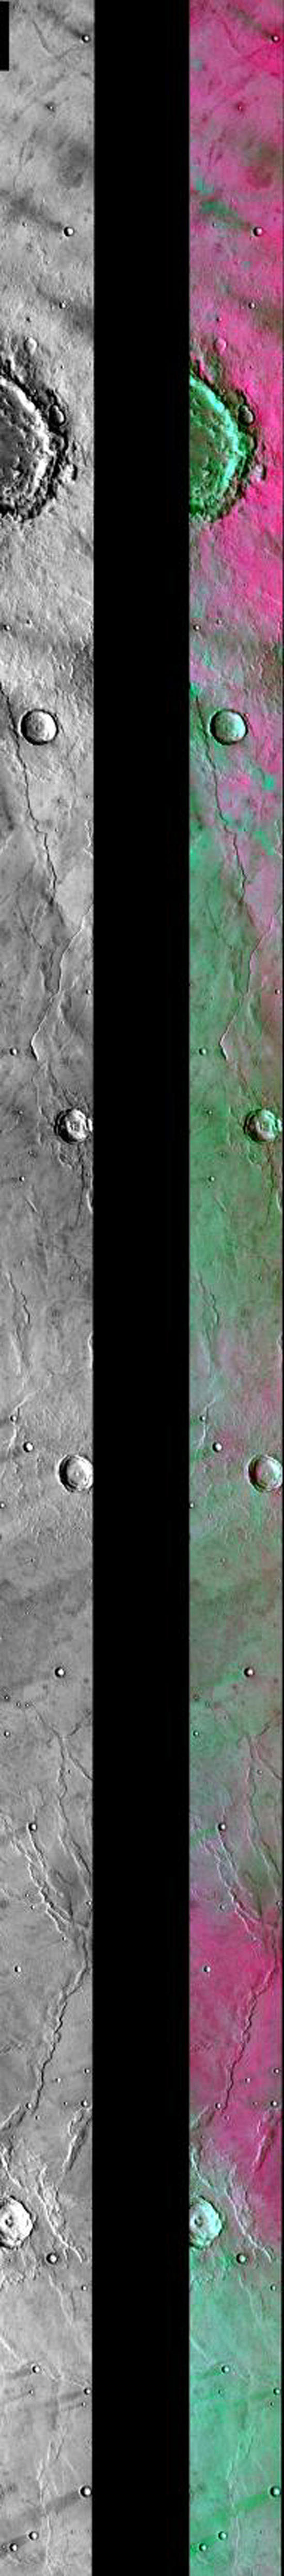 This image released on August 2, 2004 from NASA's 2001 Mars Odyssey shows a decorrelation stretch near Syrtis Major. Pink/magenta colors usually represent basaltic dunes, cyan indicates the presence of water ice clouds, while green can represent dust.